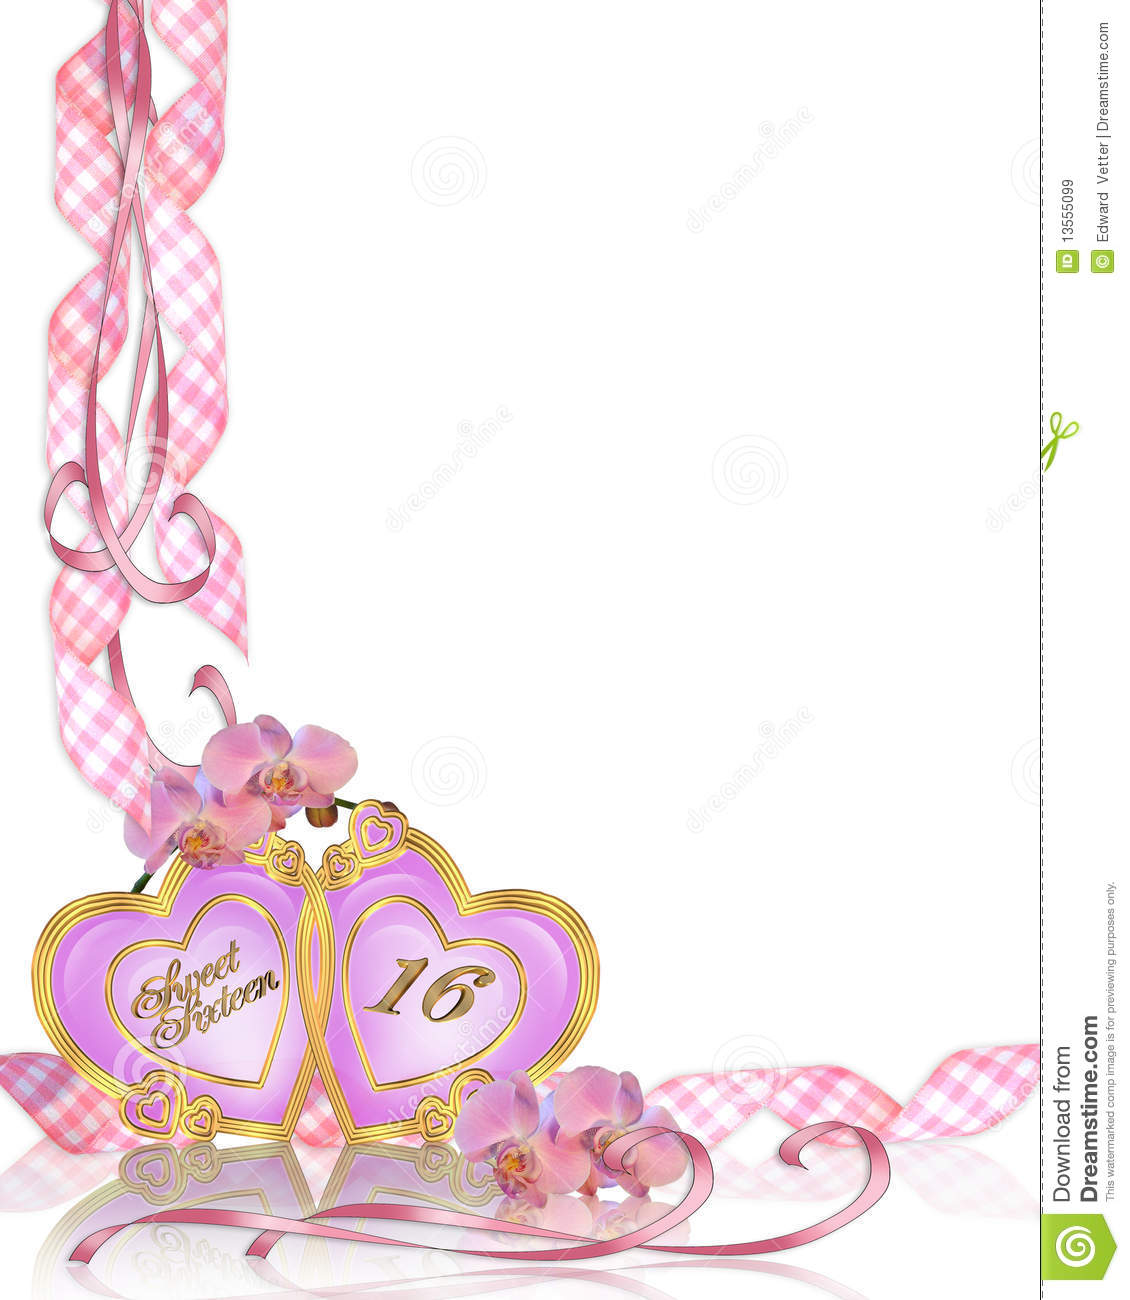 first birthday borders ; 16th-birthday-background-sweet-16-birthday-invitation-border-13555099